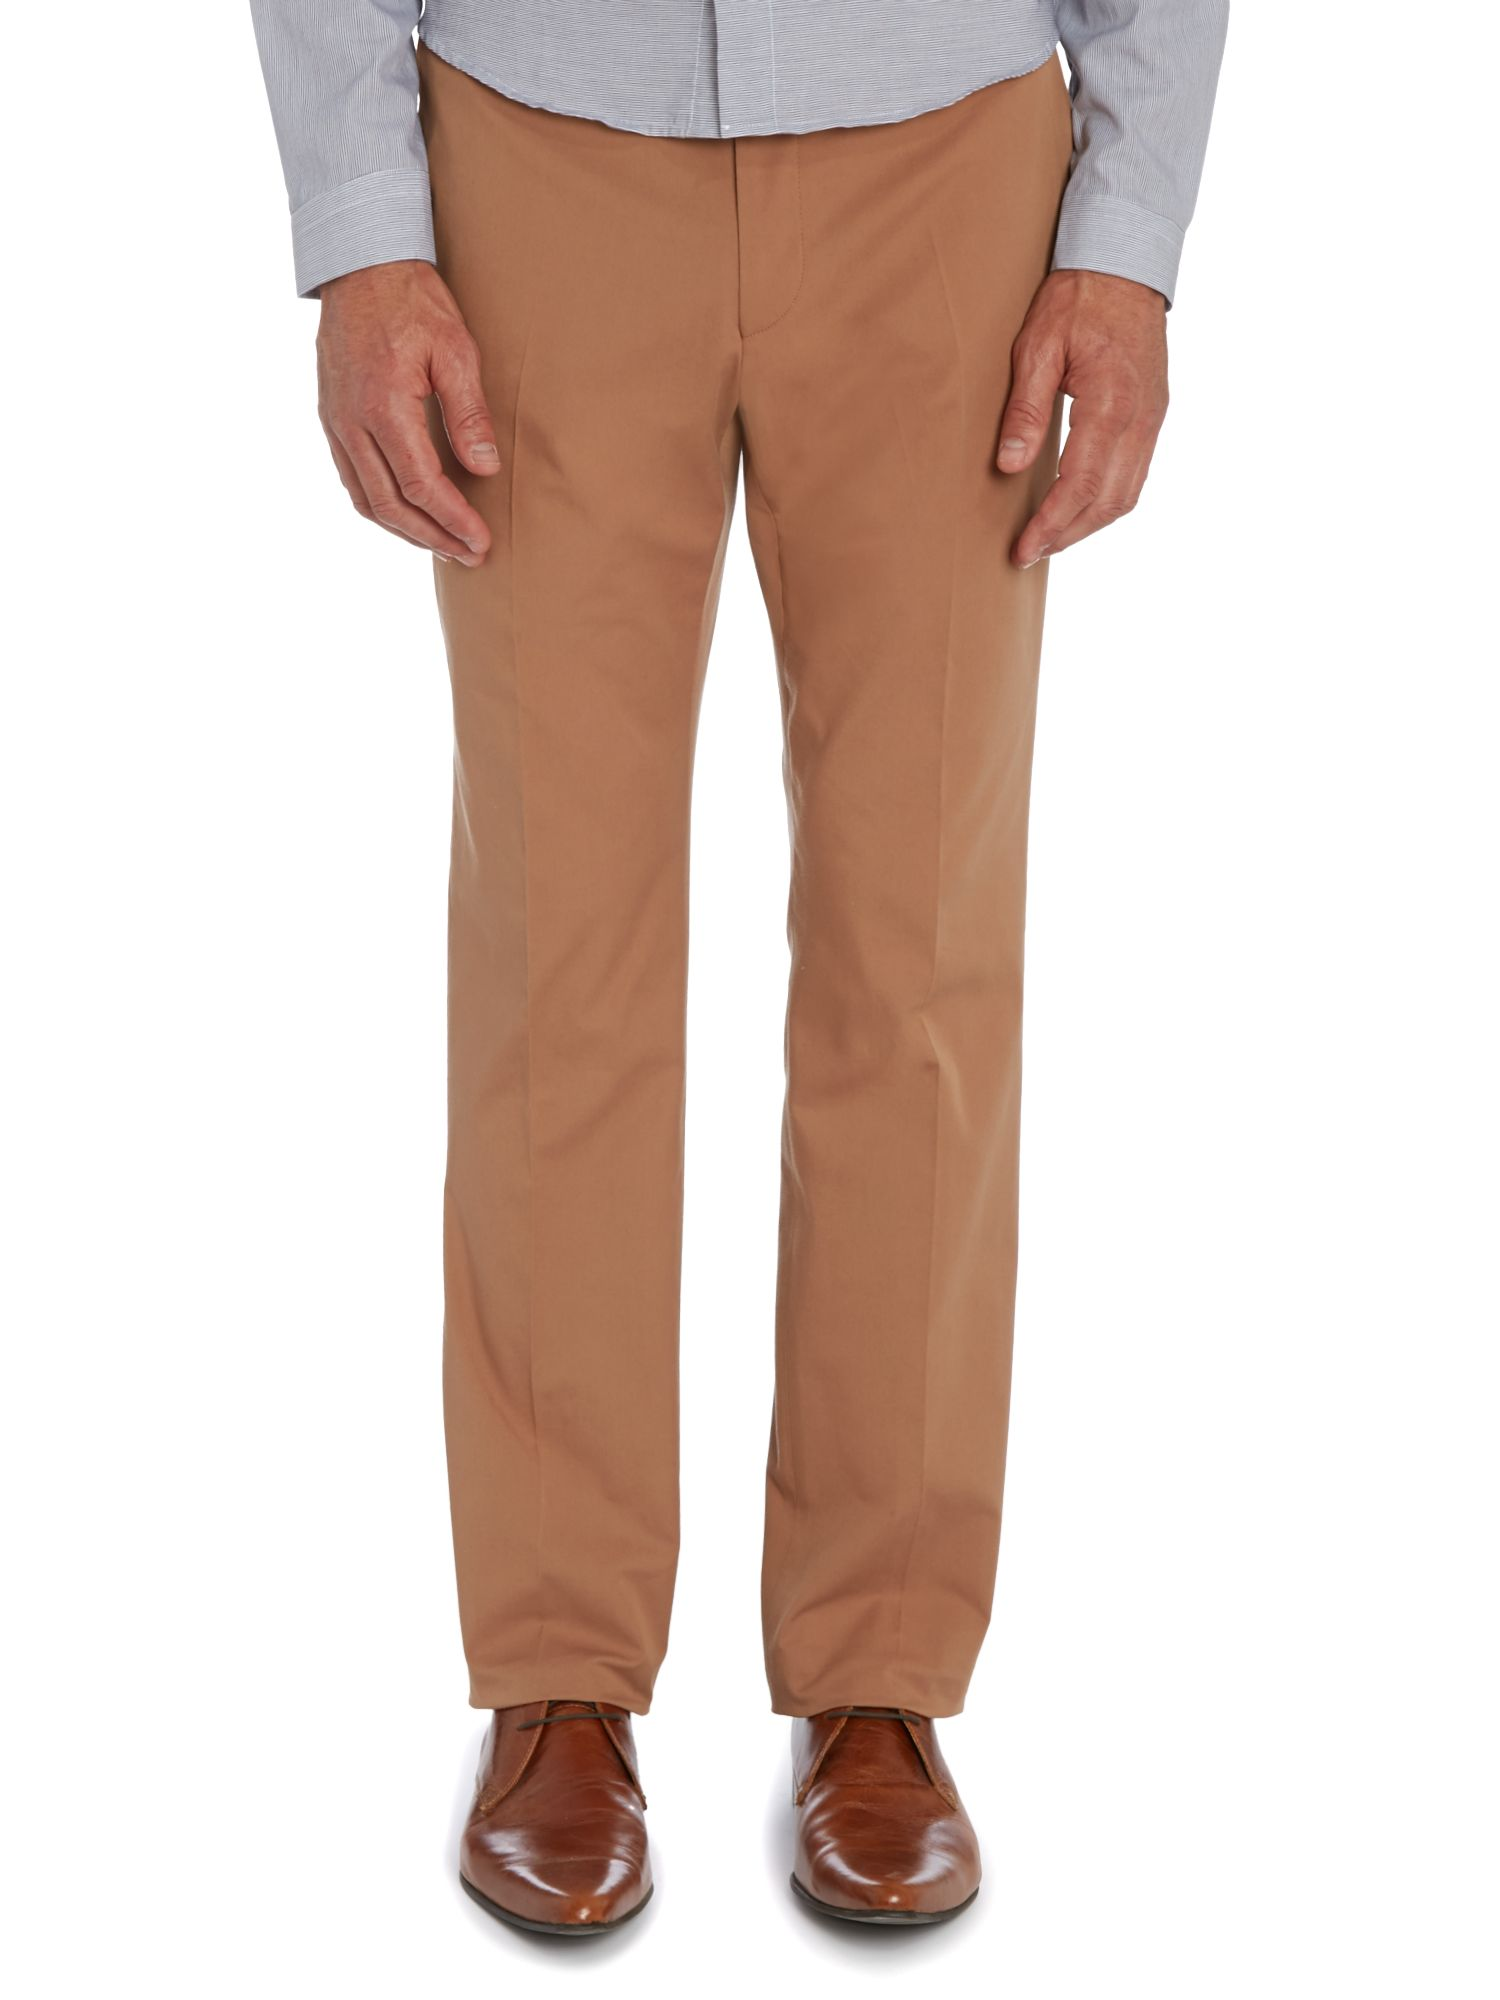 N.1 cut flat fronted trousers